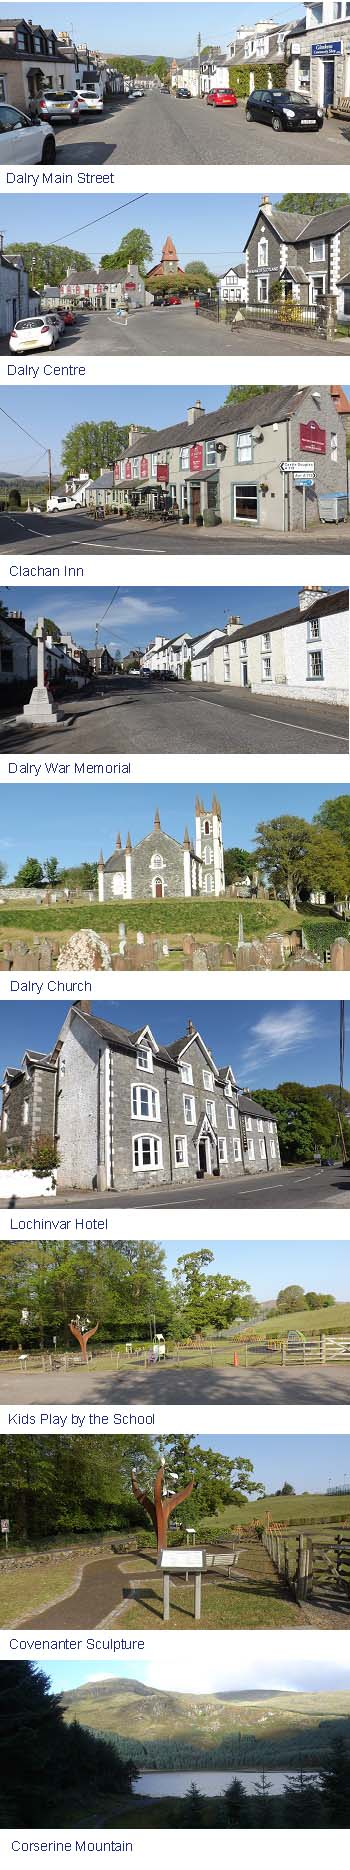 St Johns Town of Dalry Images